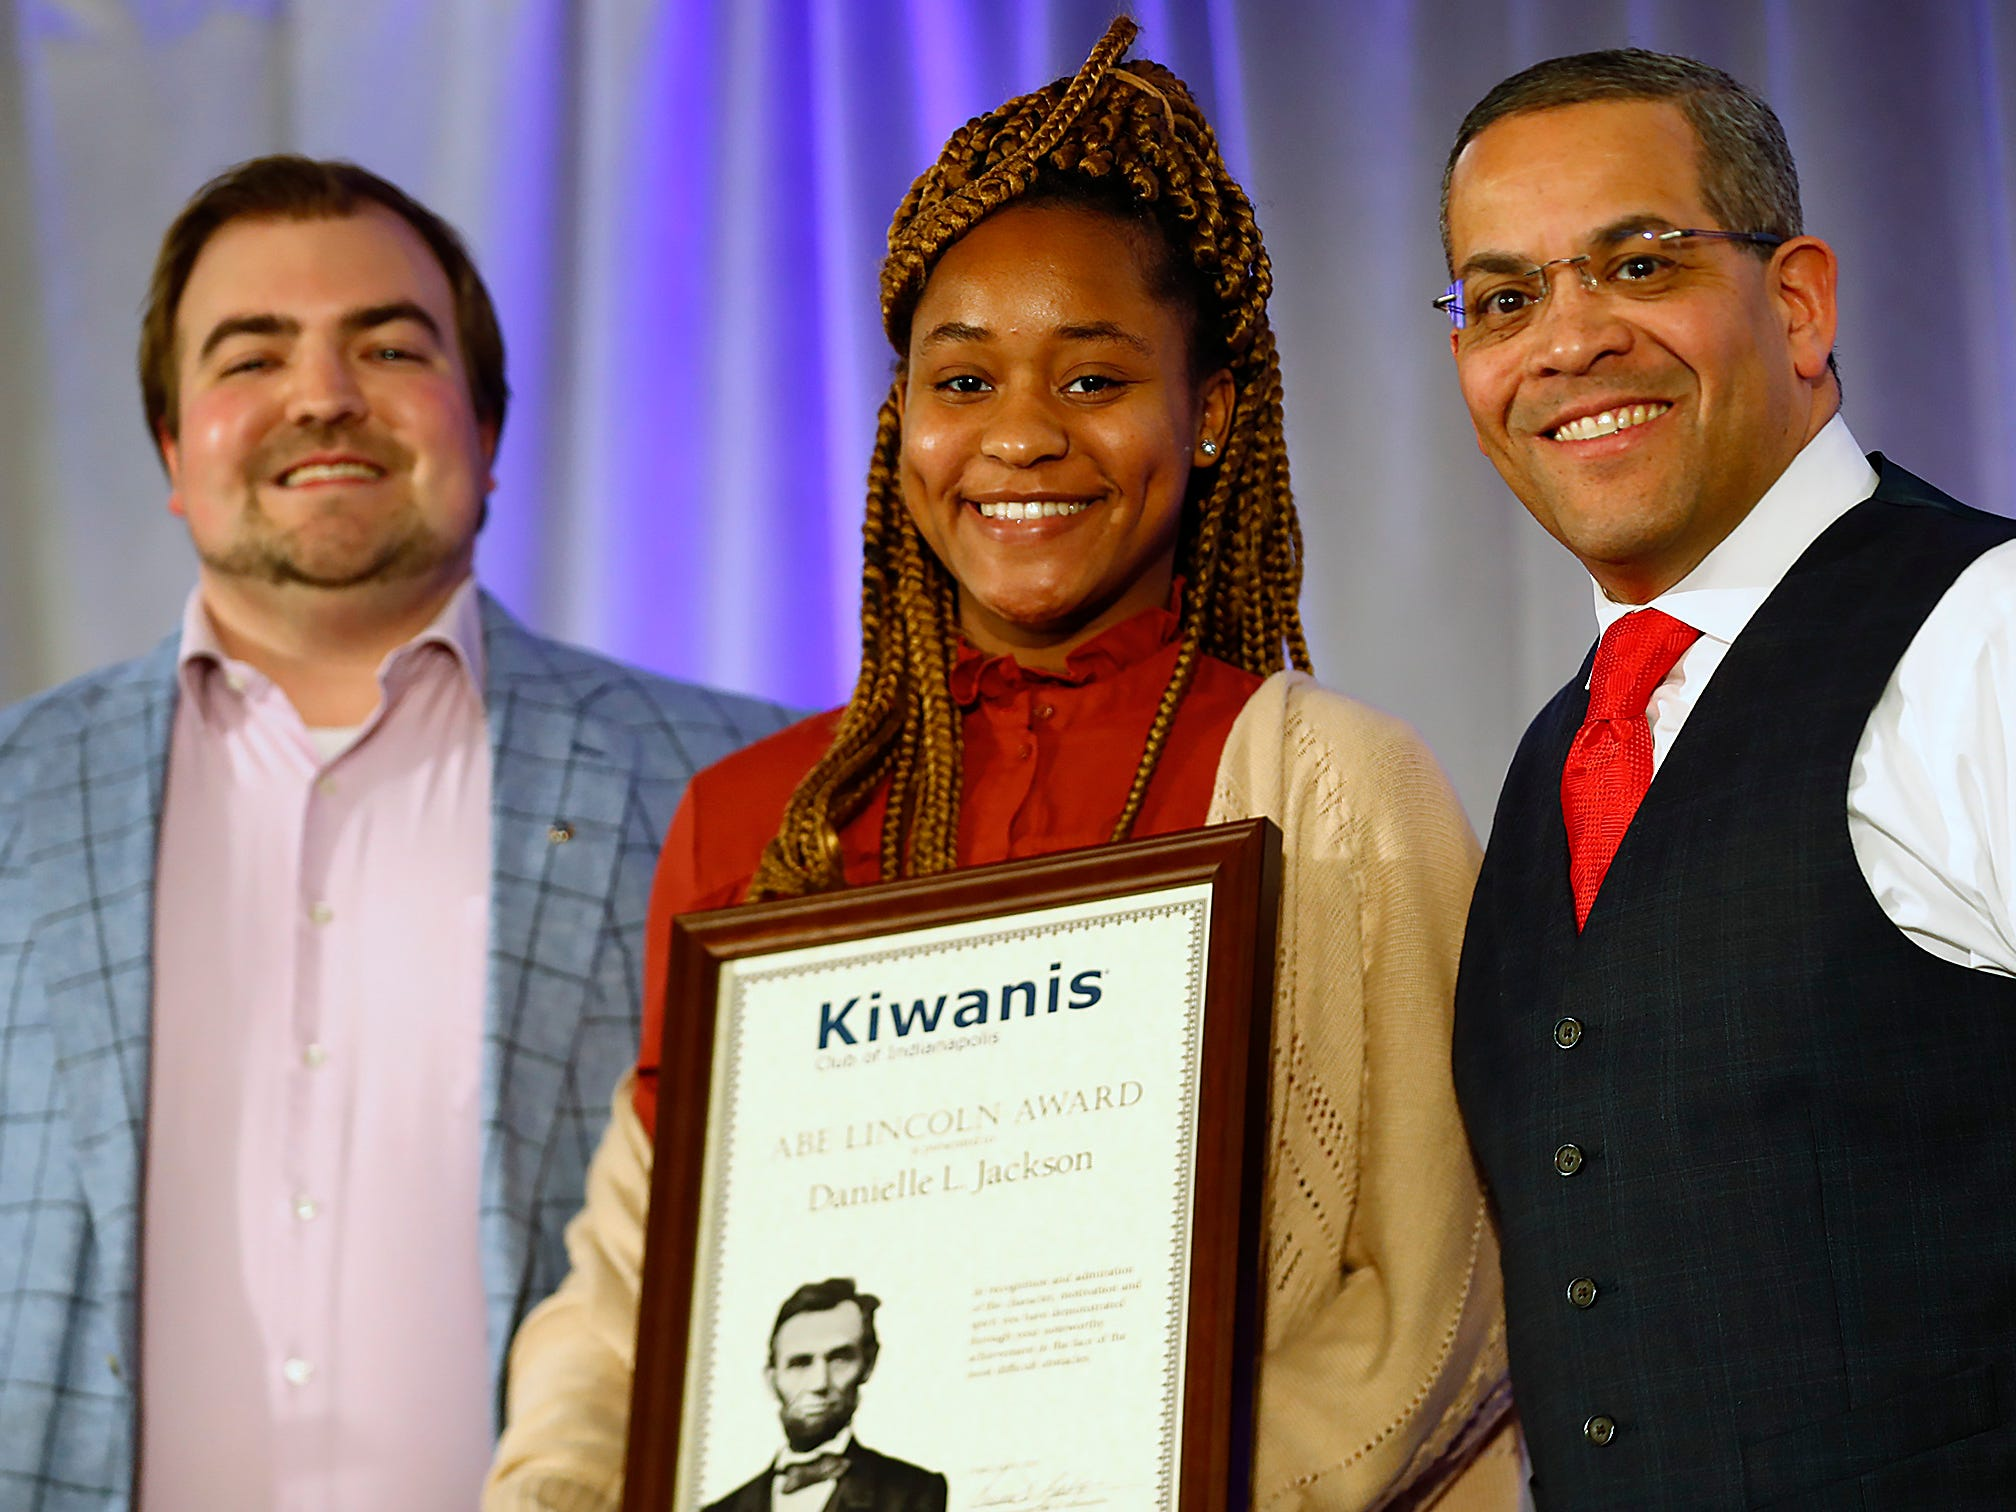 Pike High School student Danielle Jackson, center, poses with Alex Sventeckis, left, and Rafael Sanchez after receiving her 2nd Place Scholarship award at the 44th Annual Abe Lincoln Awards Program, Friday, Feb. 8, 2019. The Kiwanis Club of Indianapolis program was held at Ivy Tech Community College.  20 high school student were honored at the annual event which celebrates overcoming adversity in life to succeed. Four of the 20 students received scholarships.